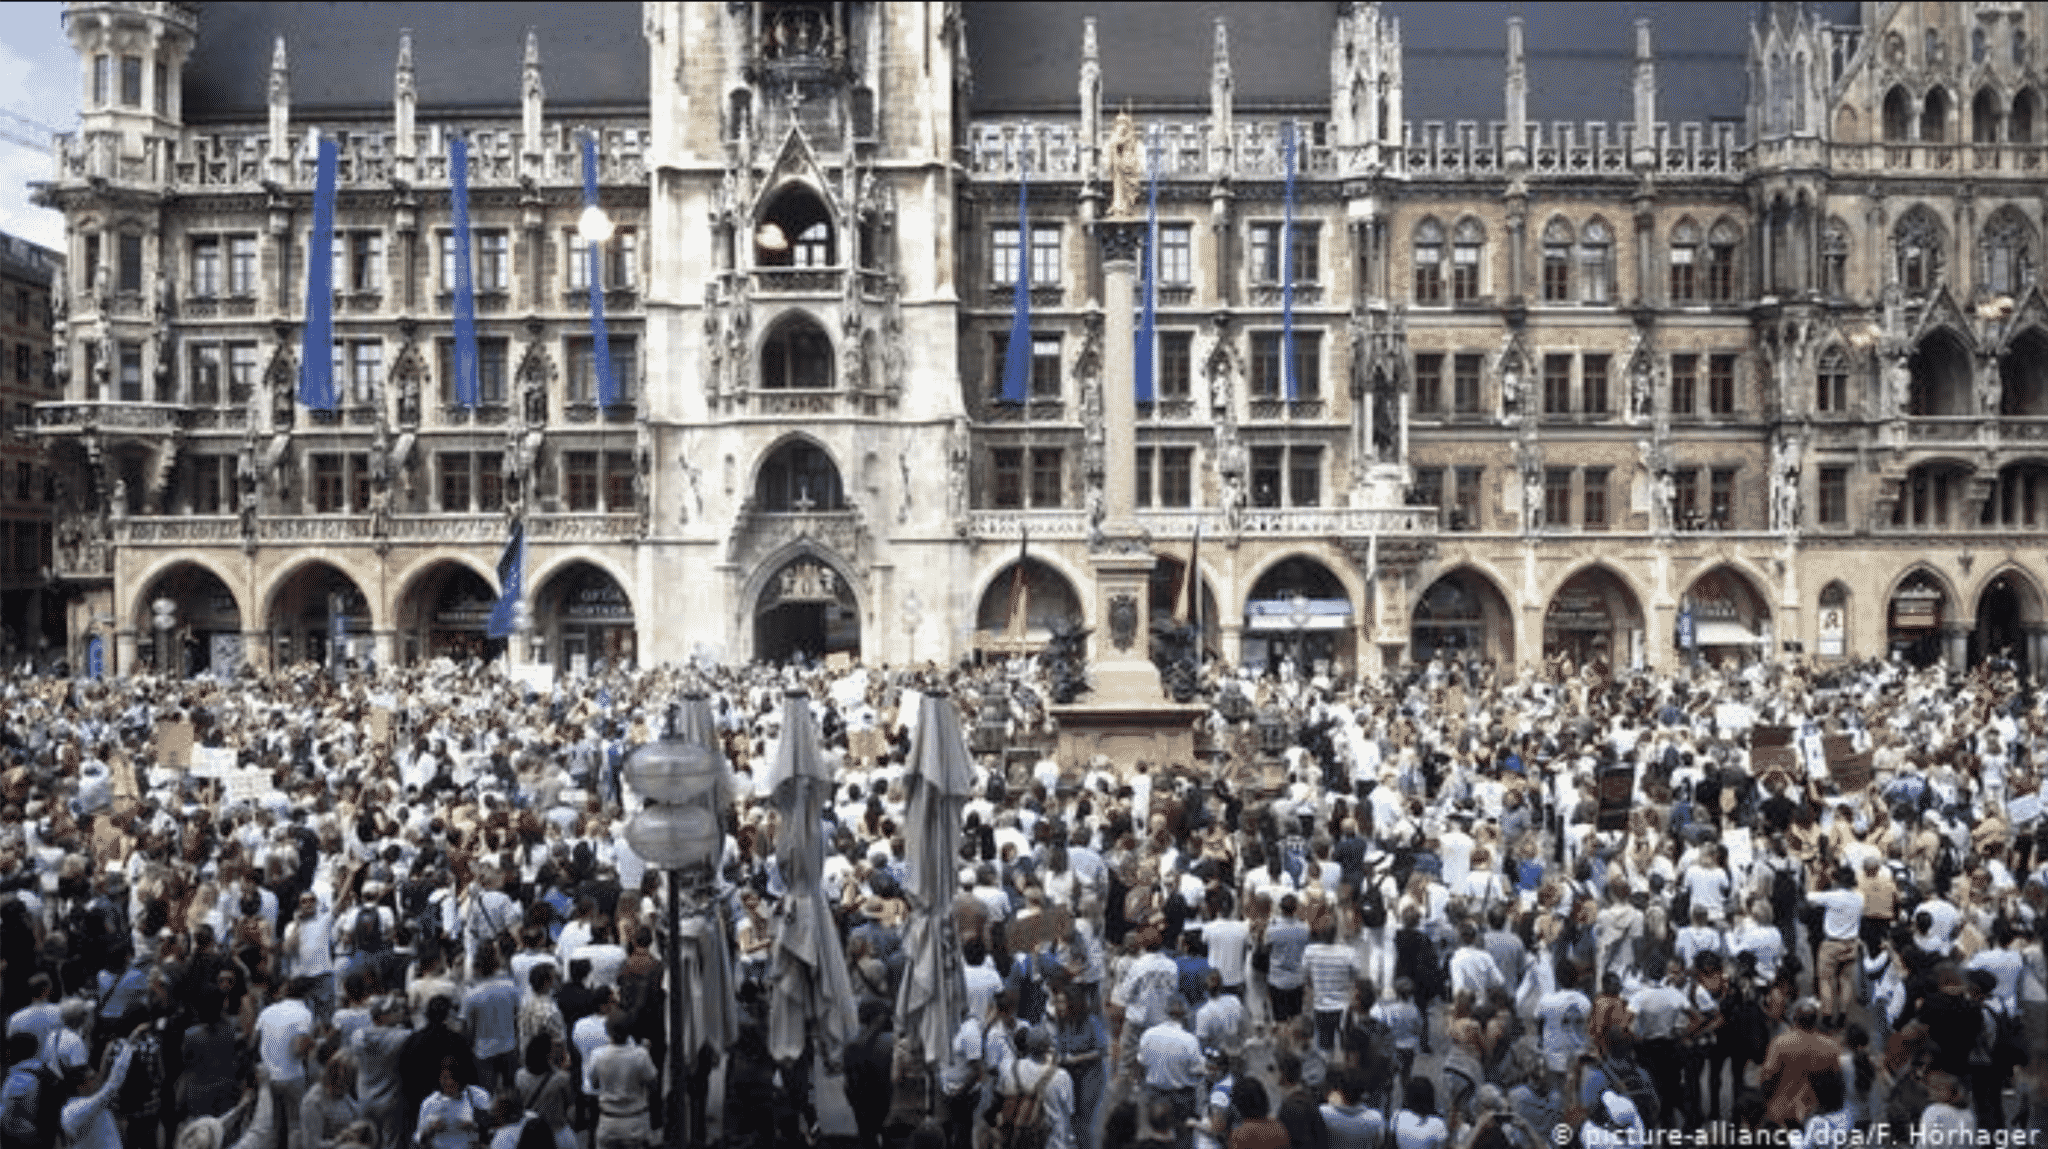 Munich town hall, Saturday May 9 2020